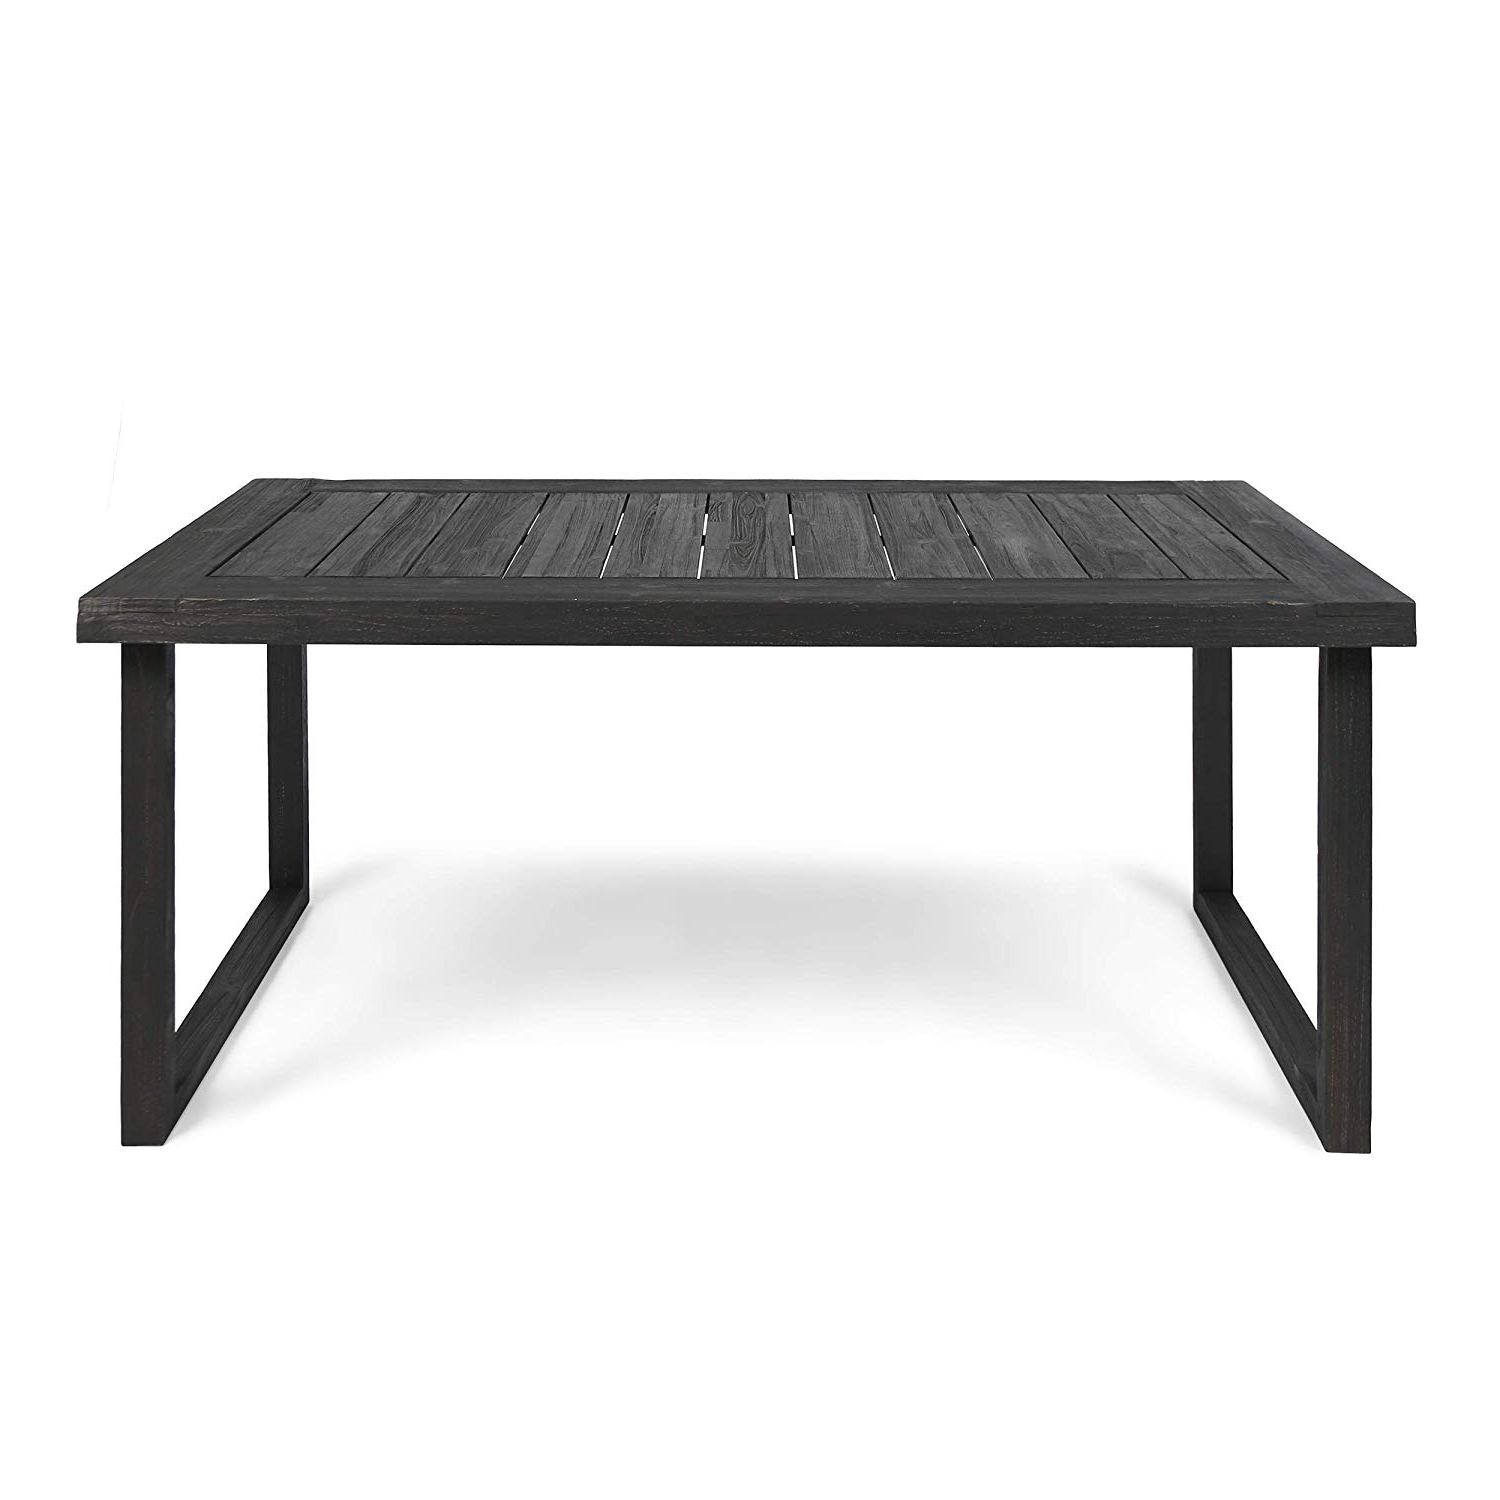 "Recent Christopher Knight Home Ann Outdoor 69"" Acacia Wood Dining Table, Sandblast  Dark Gray Finish For Acacia Dining Tables With Black X Legs (View 24 of 25)"